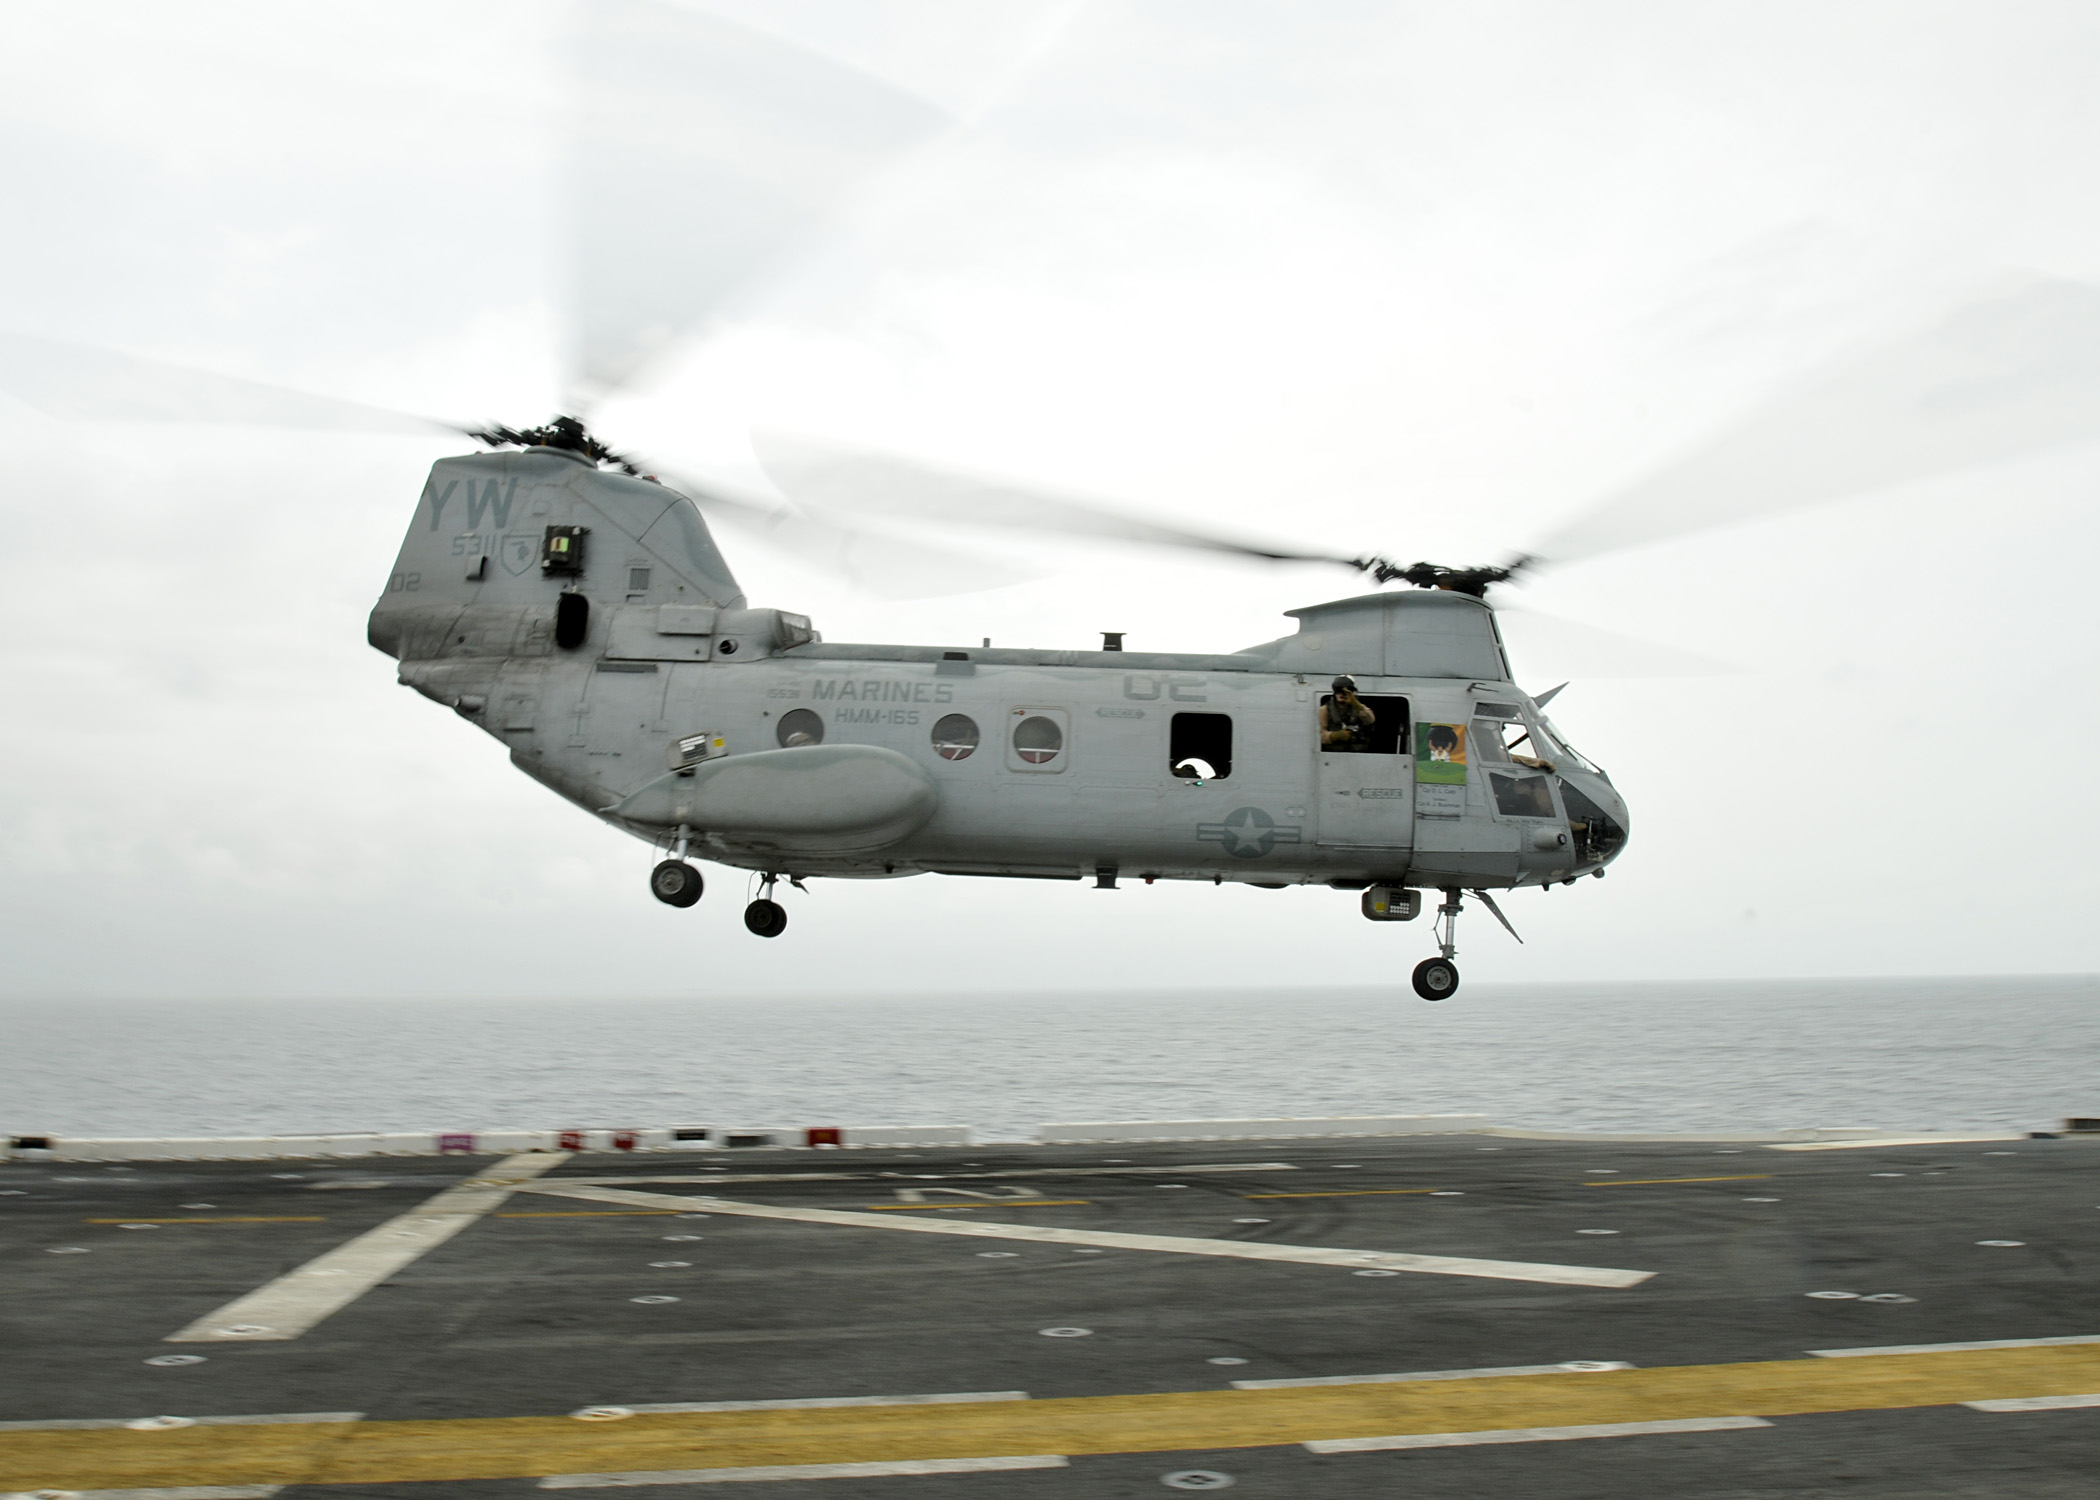 chinook helicopters with File Us Navy 100813 N 1226d 066 A Ch 46 Sea Knight Helicopter Launches From Uss Peleliu  Lha 5 on Raaf Amberley 76 Years On Australias Largest Defence Force Base besides Funny Tape Face Photos likewise File us navy 100813 N 1226d 066 a ch 46 sea knight helicopter launches from uss peleliu  lha 5 also Org furthermore In Flight Refueling.